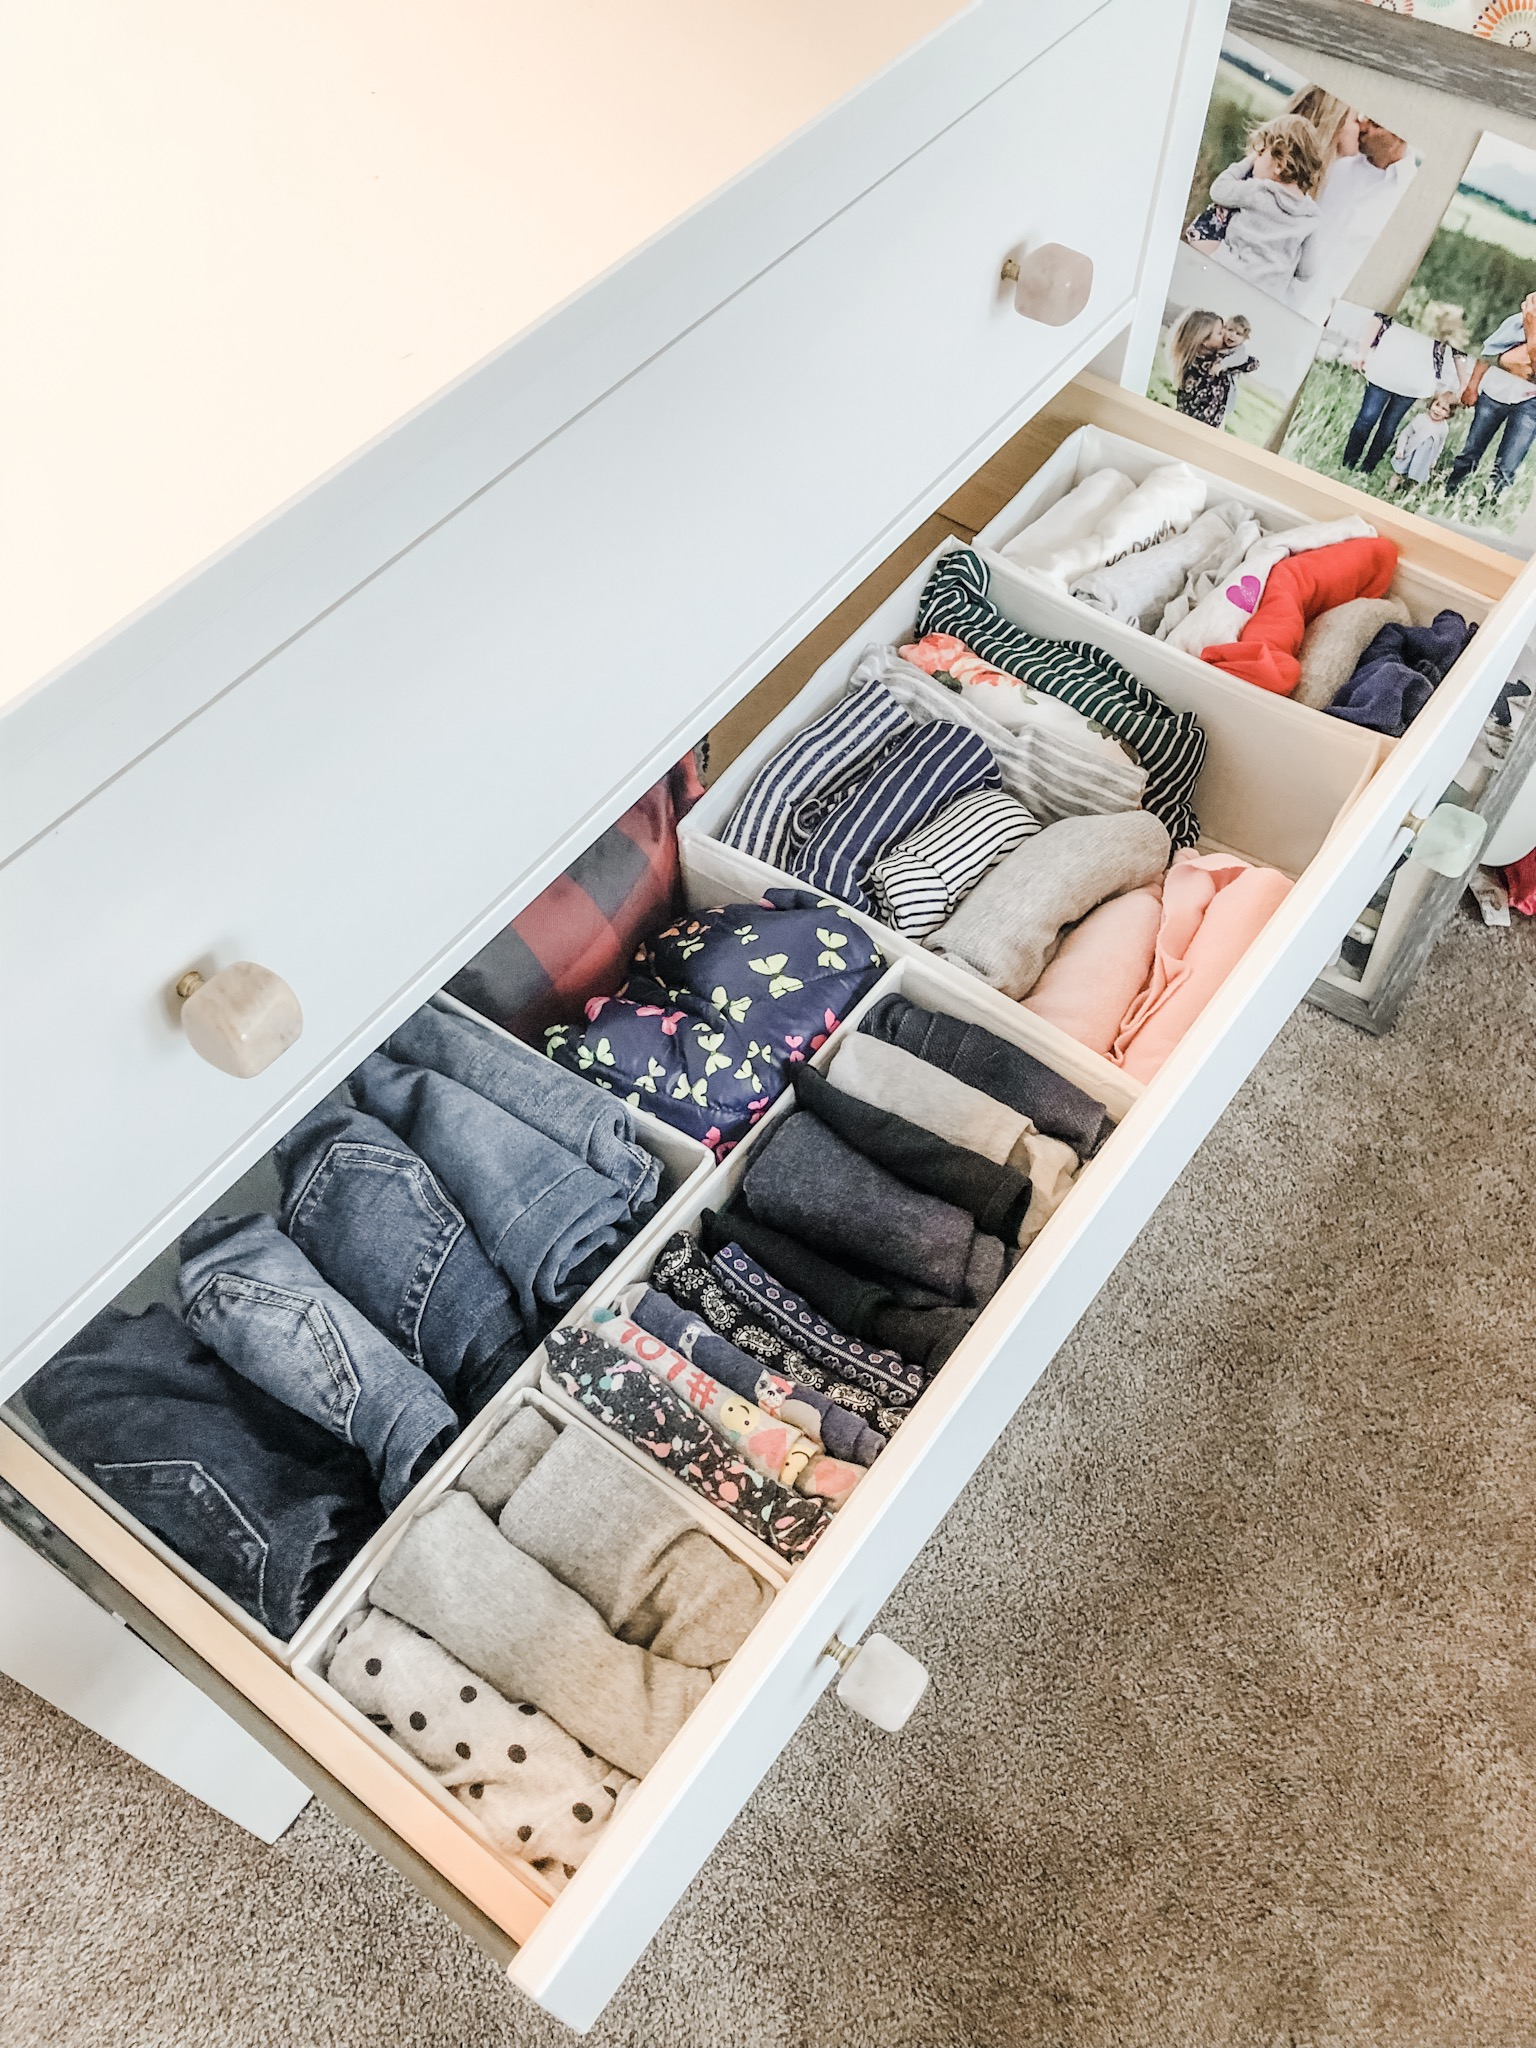 Riley's Drawers/How We Fold